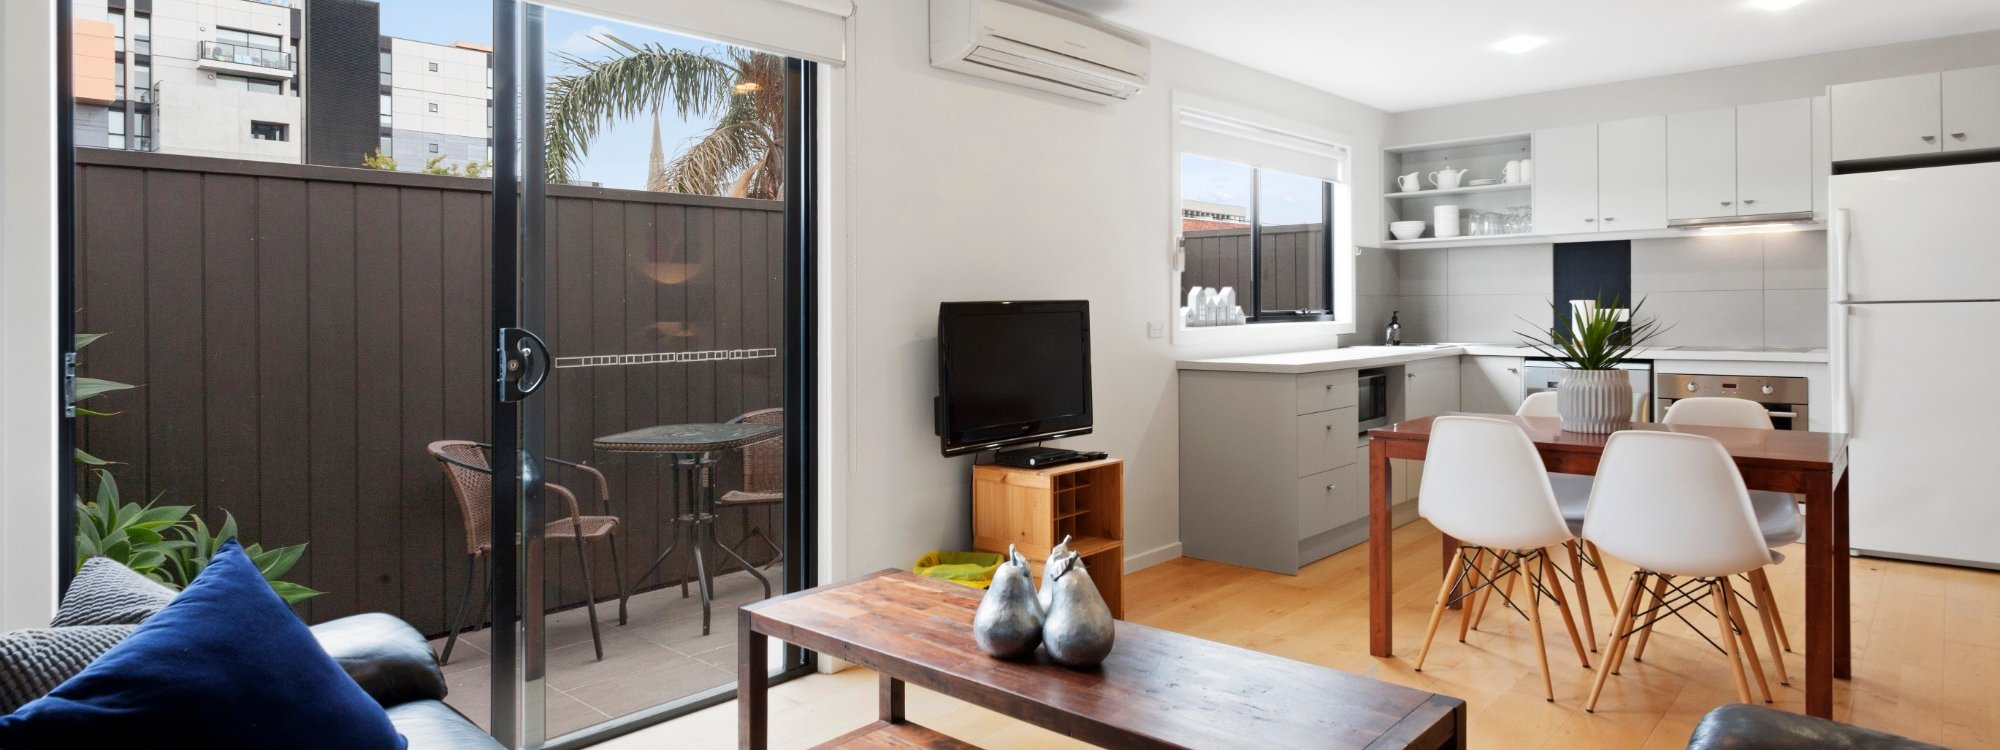 Manallack Apartments Boyd - Melbourne - Kitchen Dining Area 2